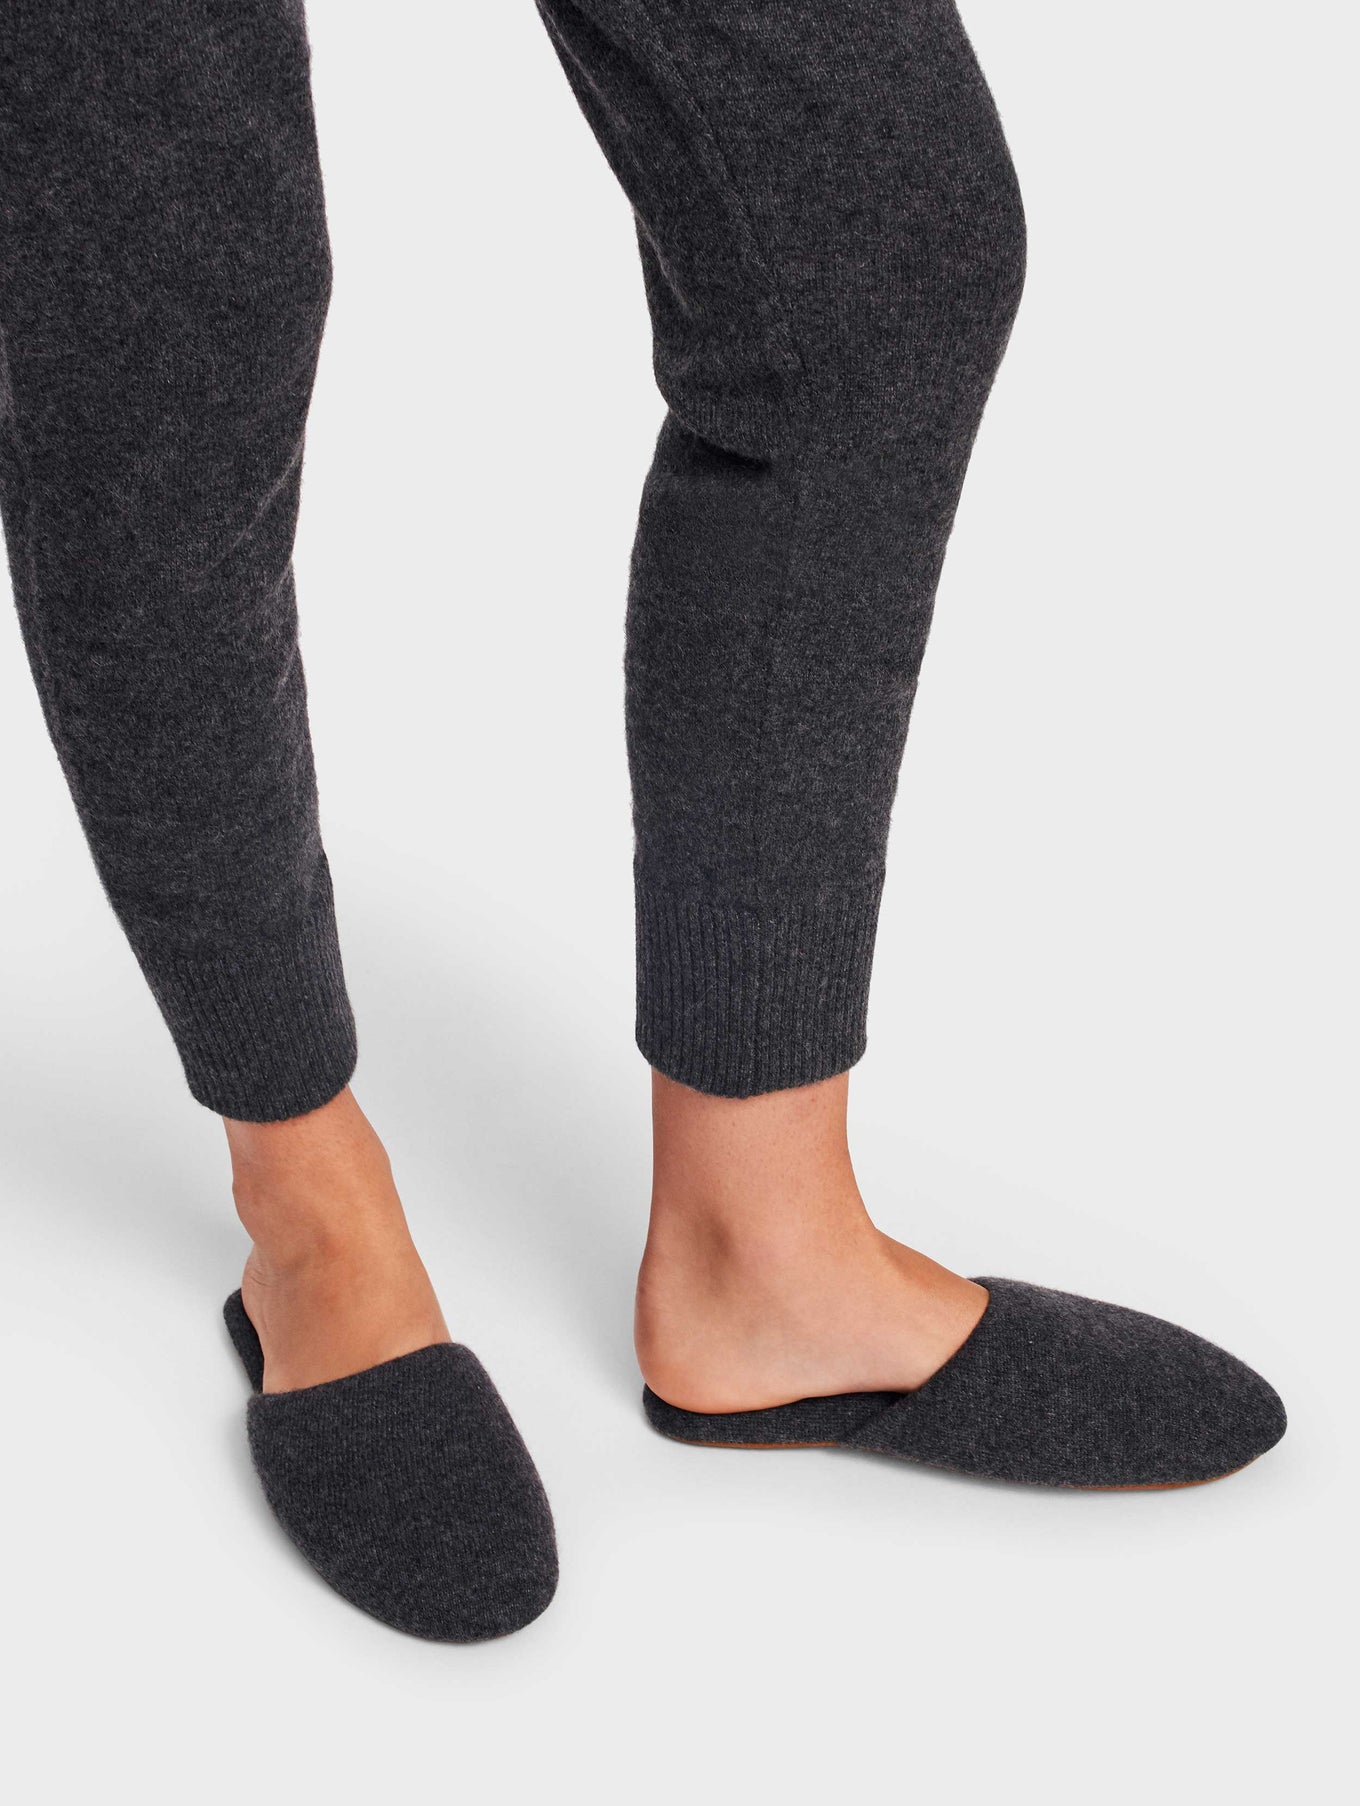 Cashmere Slide Slipper - Charcoal Heather - Image 1